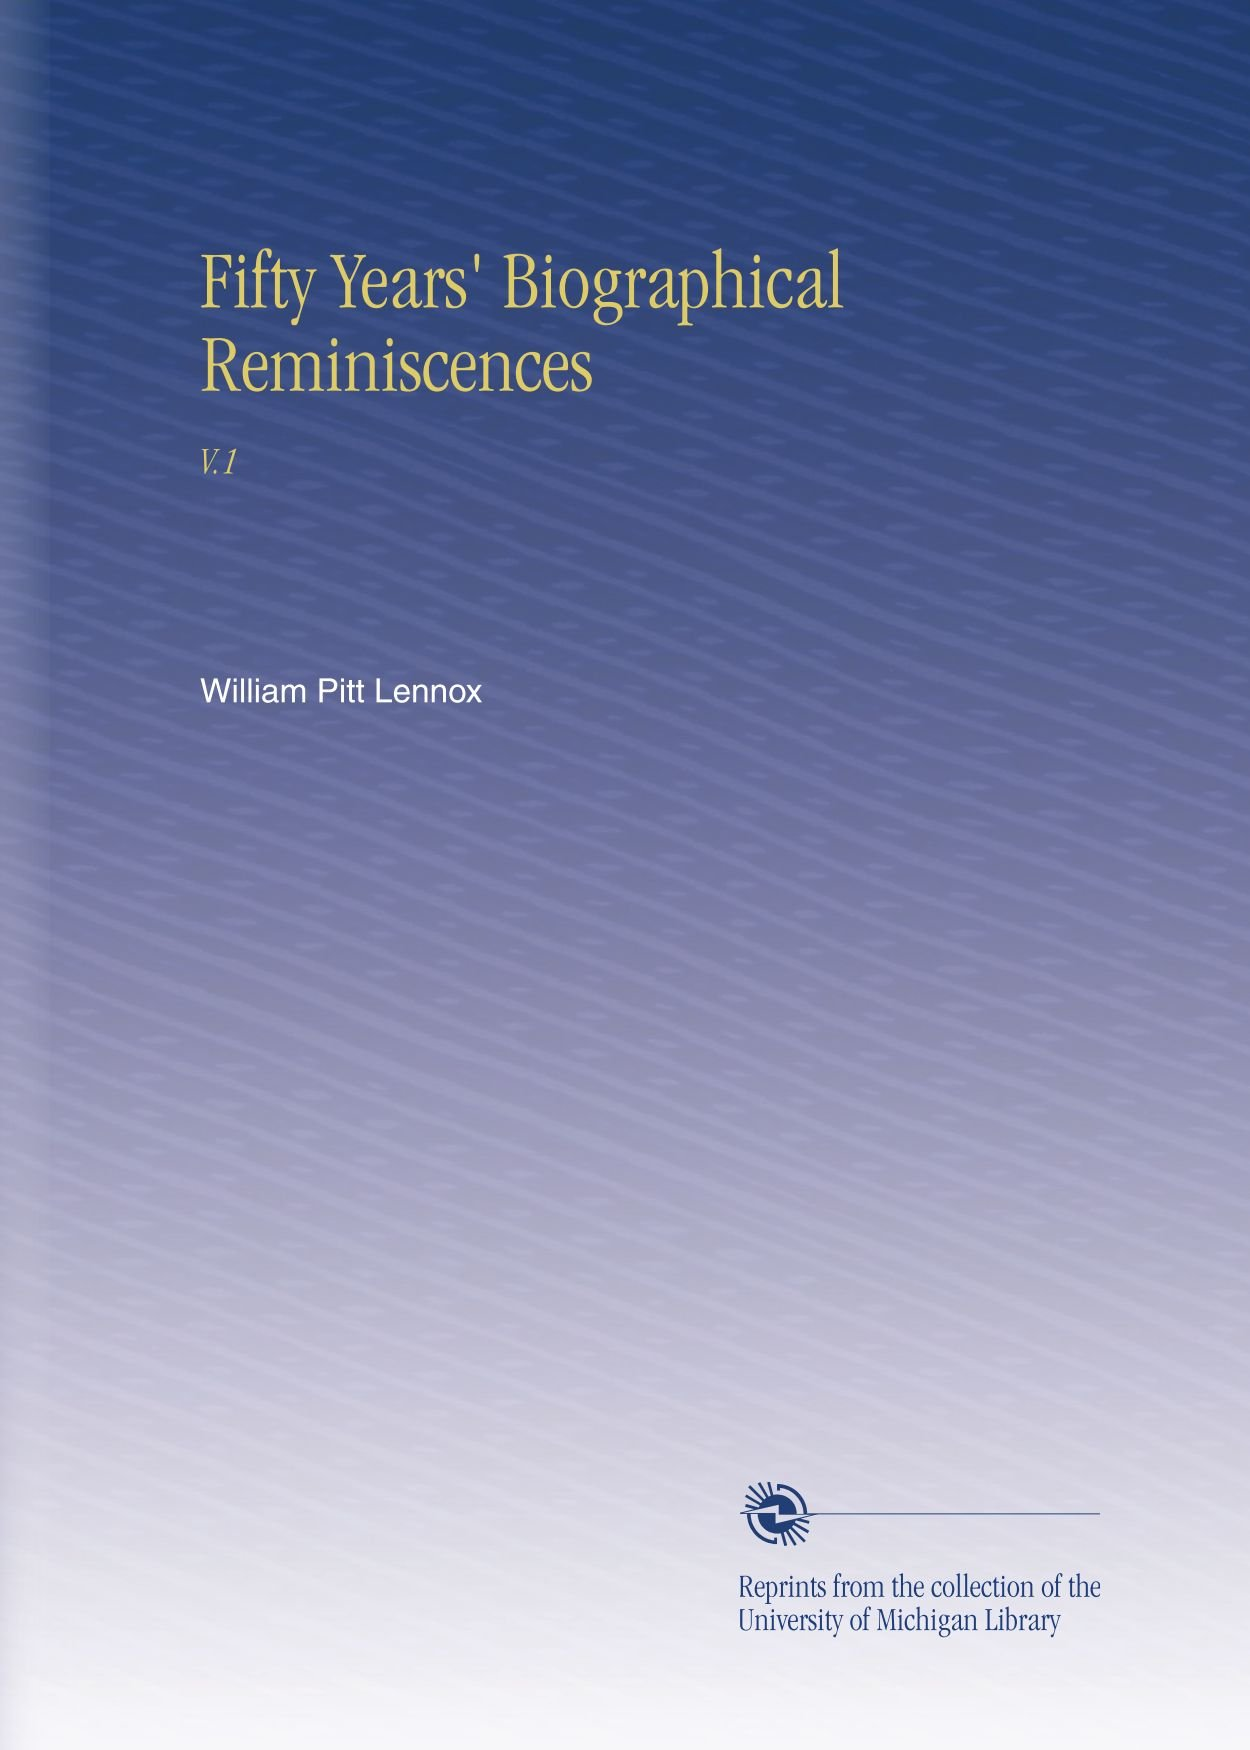 Download Fifty Years' Biographical Reminiscences: V.1 PDF